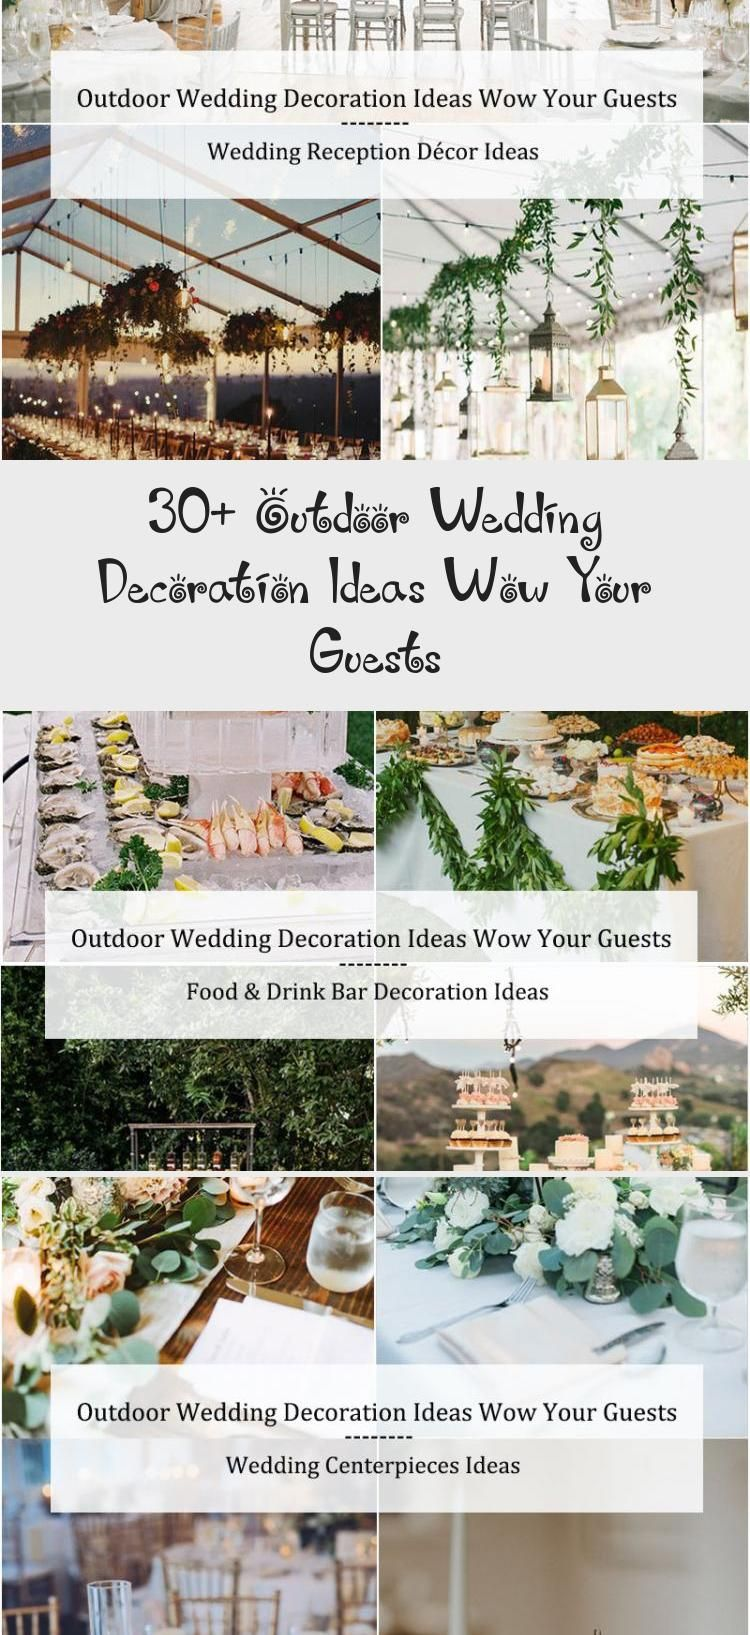 30 Outdoor Wedding Decoration Ideas Wow Your Guests Cheap Wedding Ideas Backyardgard In 2020 Outdoor Wedding Decorations Outdoor Wedding Garden Wedding Bridesmaids